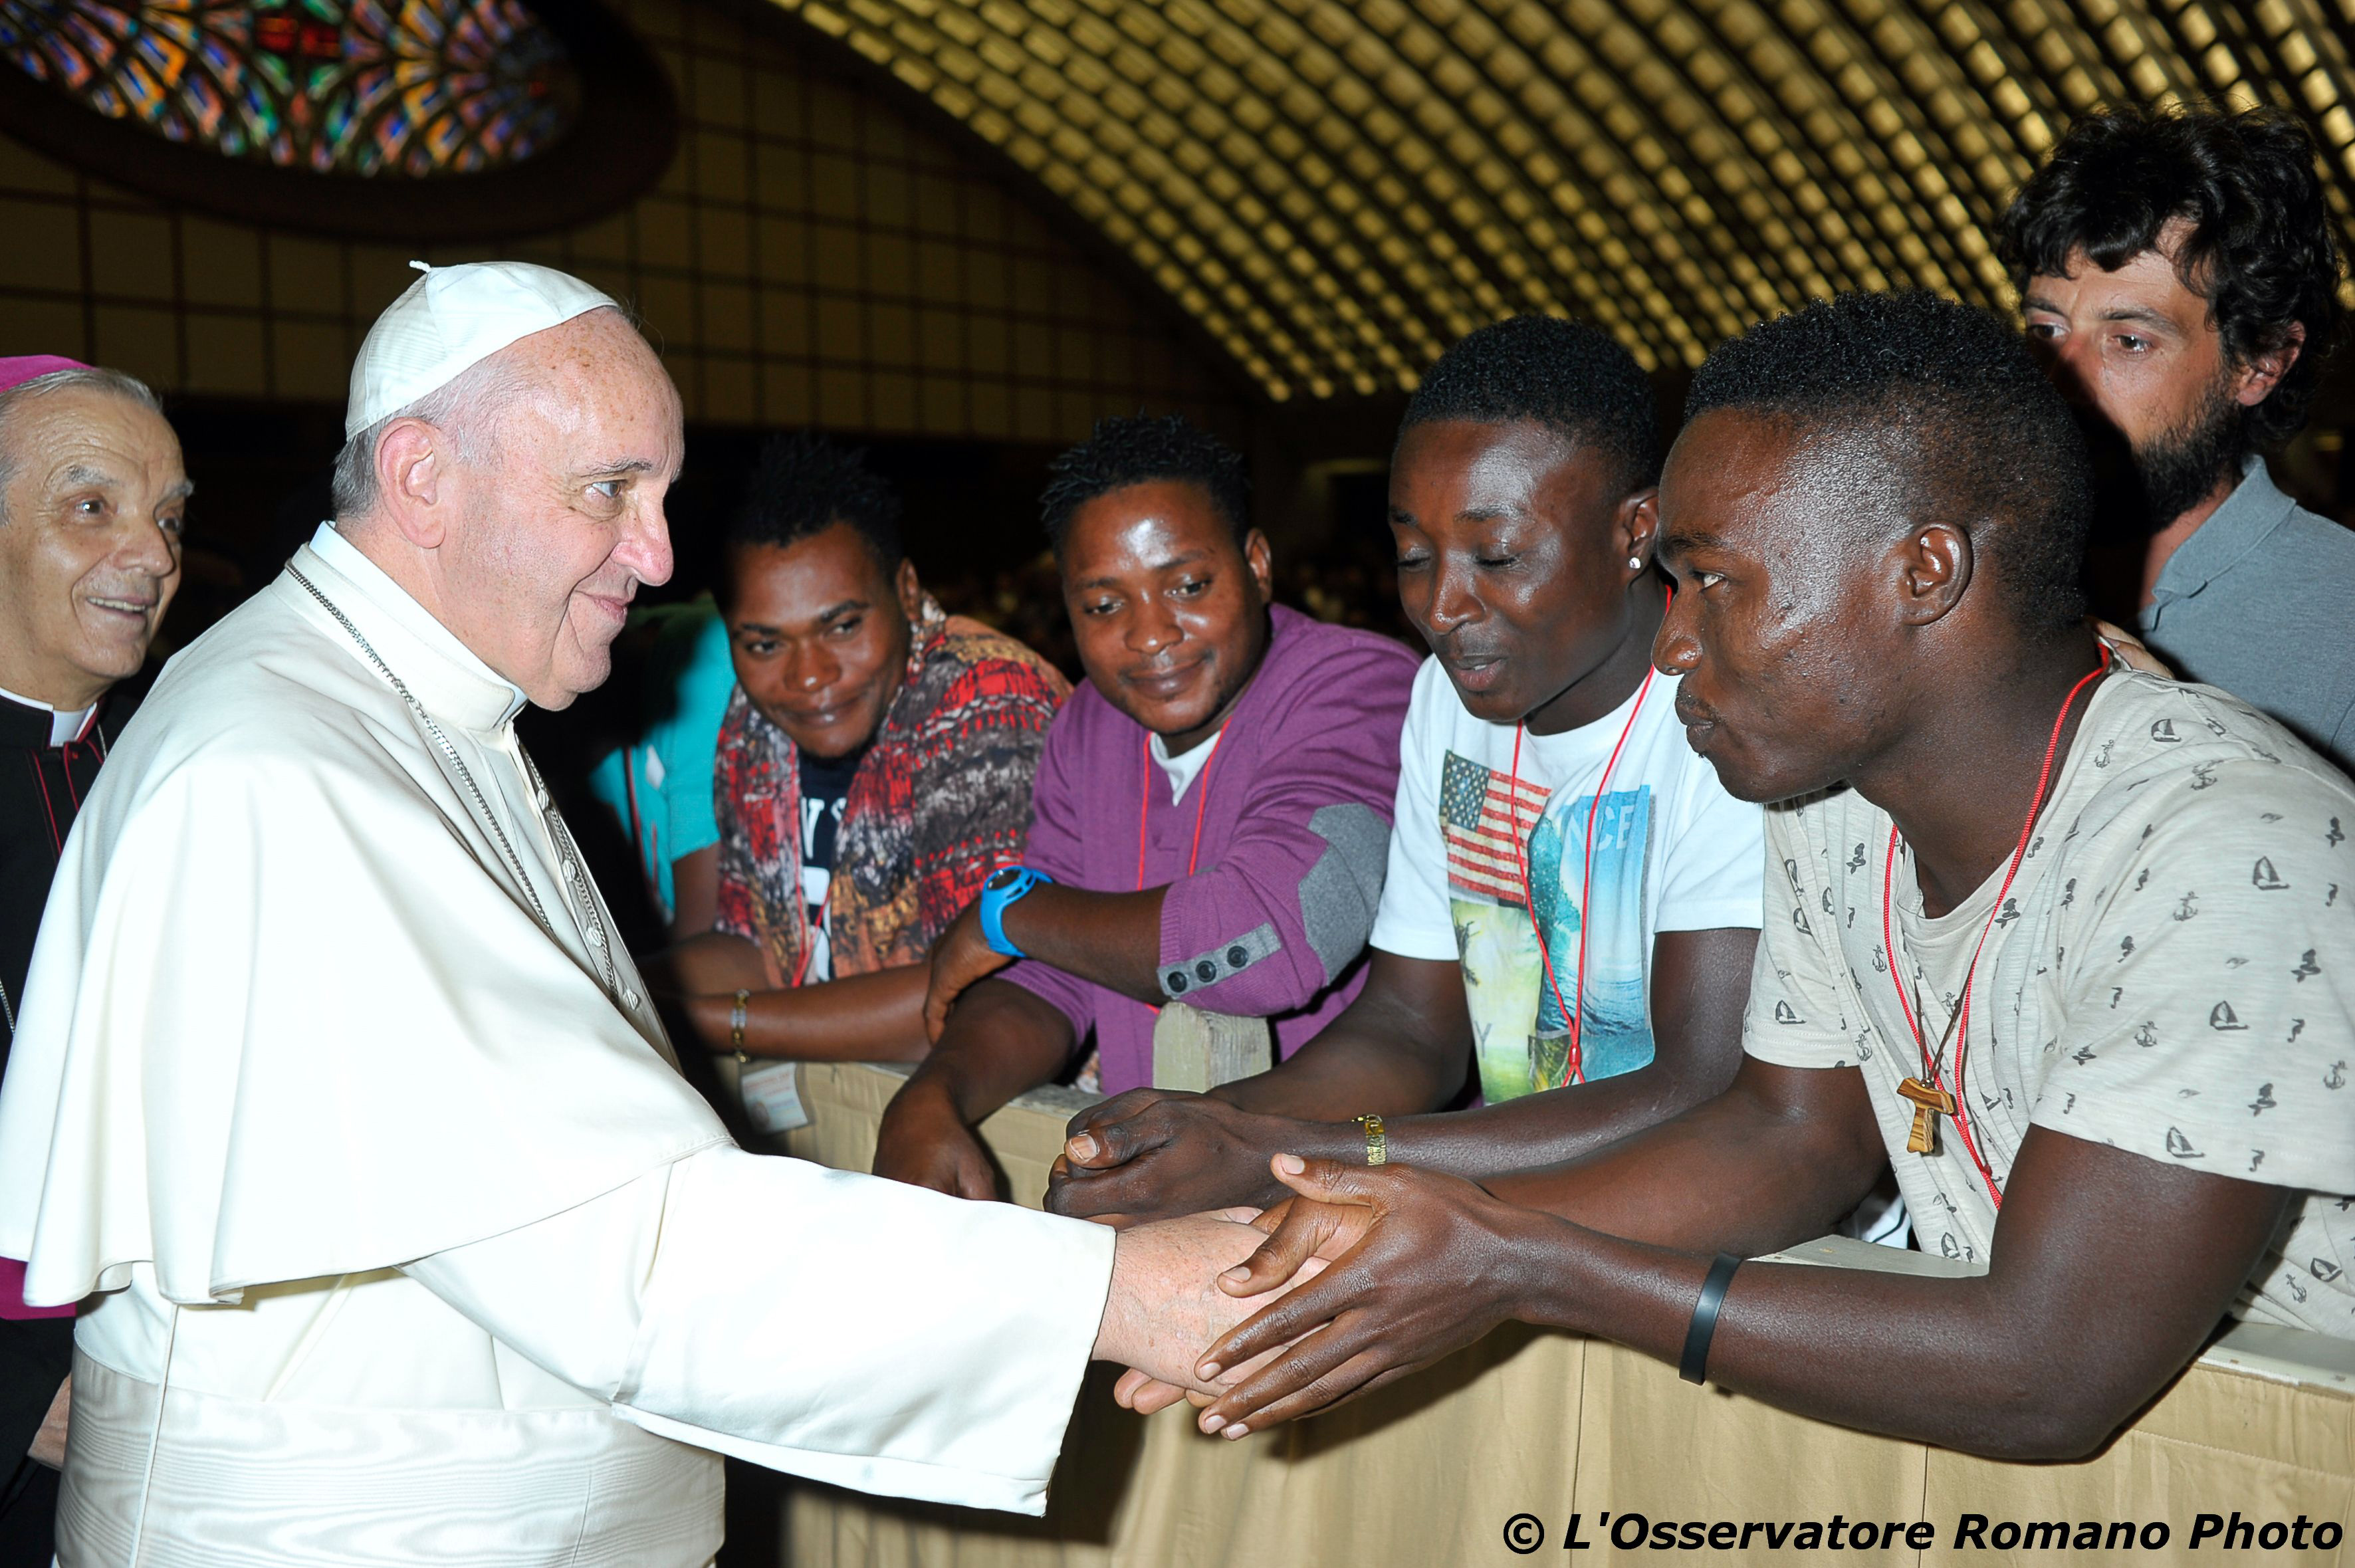 Pope Francis salutes migrants from Nigeria during his weekly general audience he held in the Pope Paul VI hall, at the Vatican,  on Wednesday, Aug. 12, 2015. Photo: L'Osservatore Romano/ AP